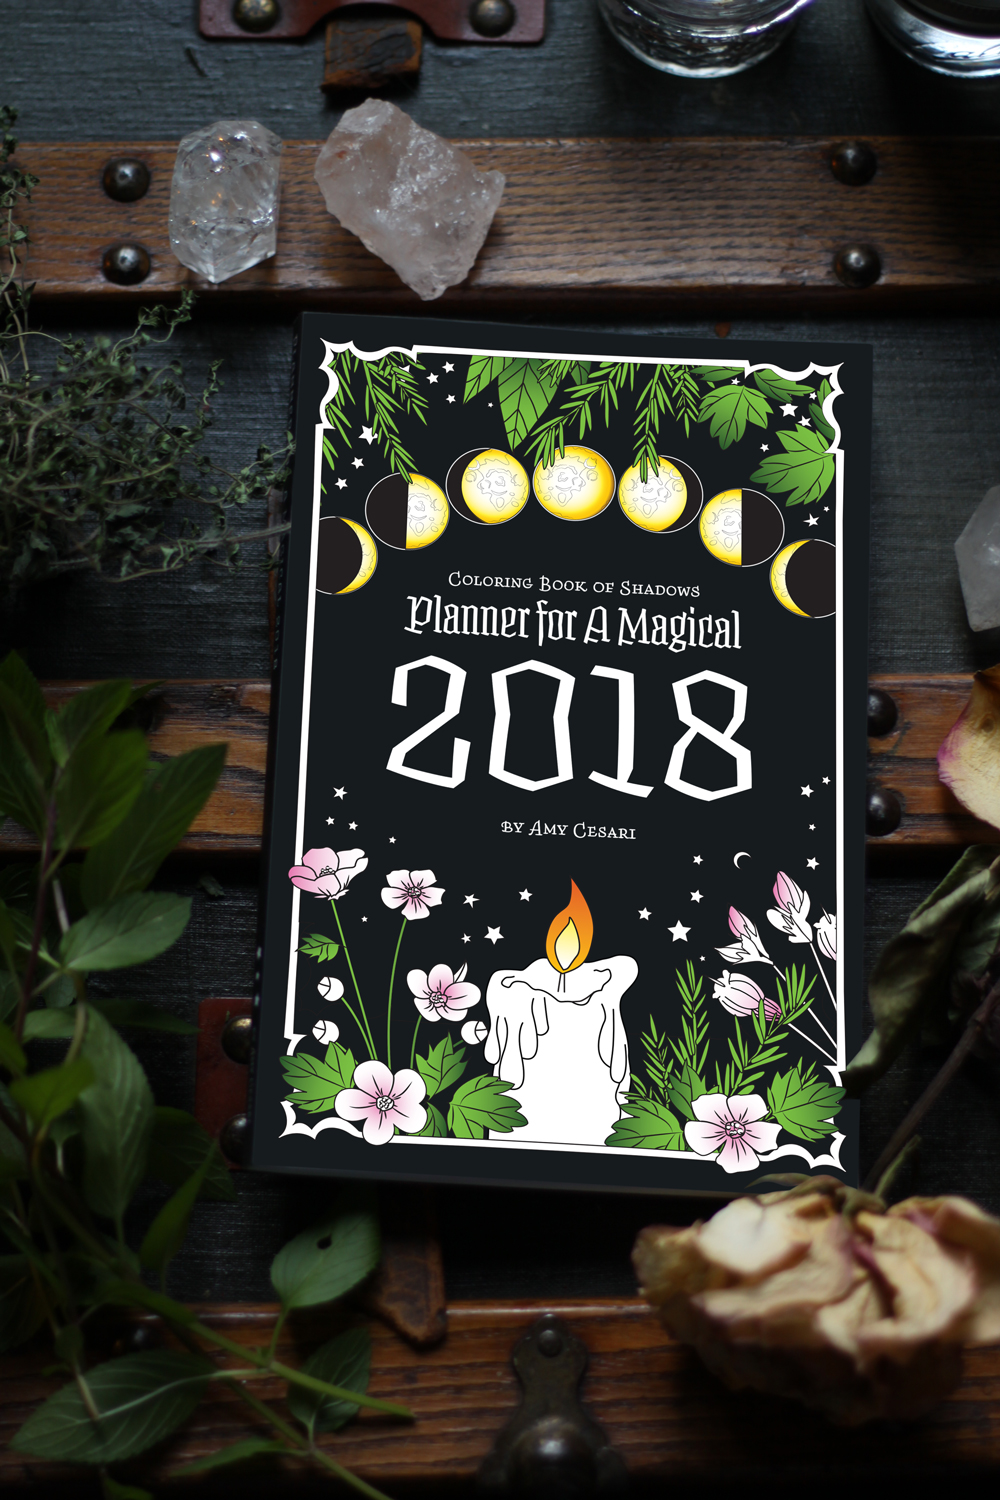 Planner for a Magical 2018 Coloring